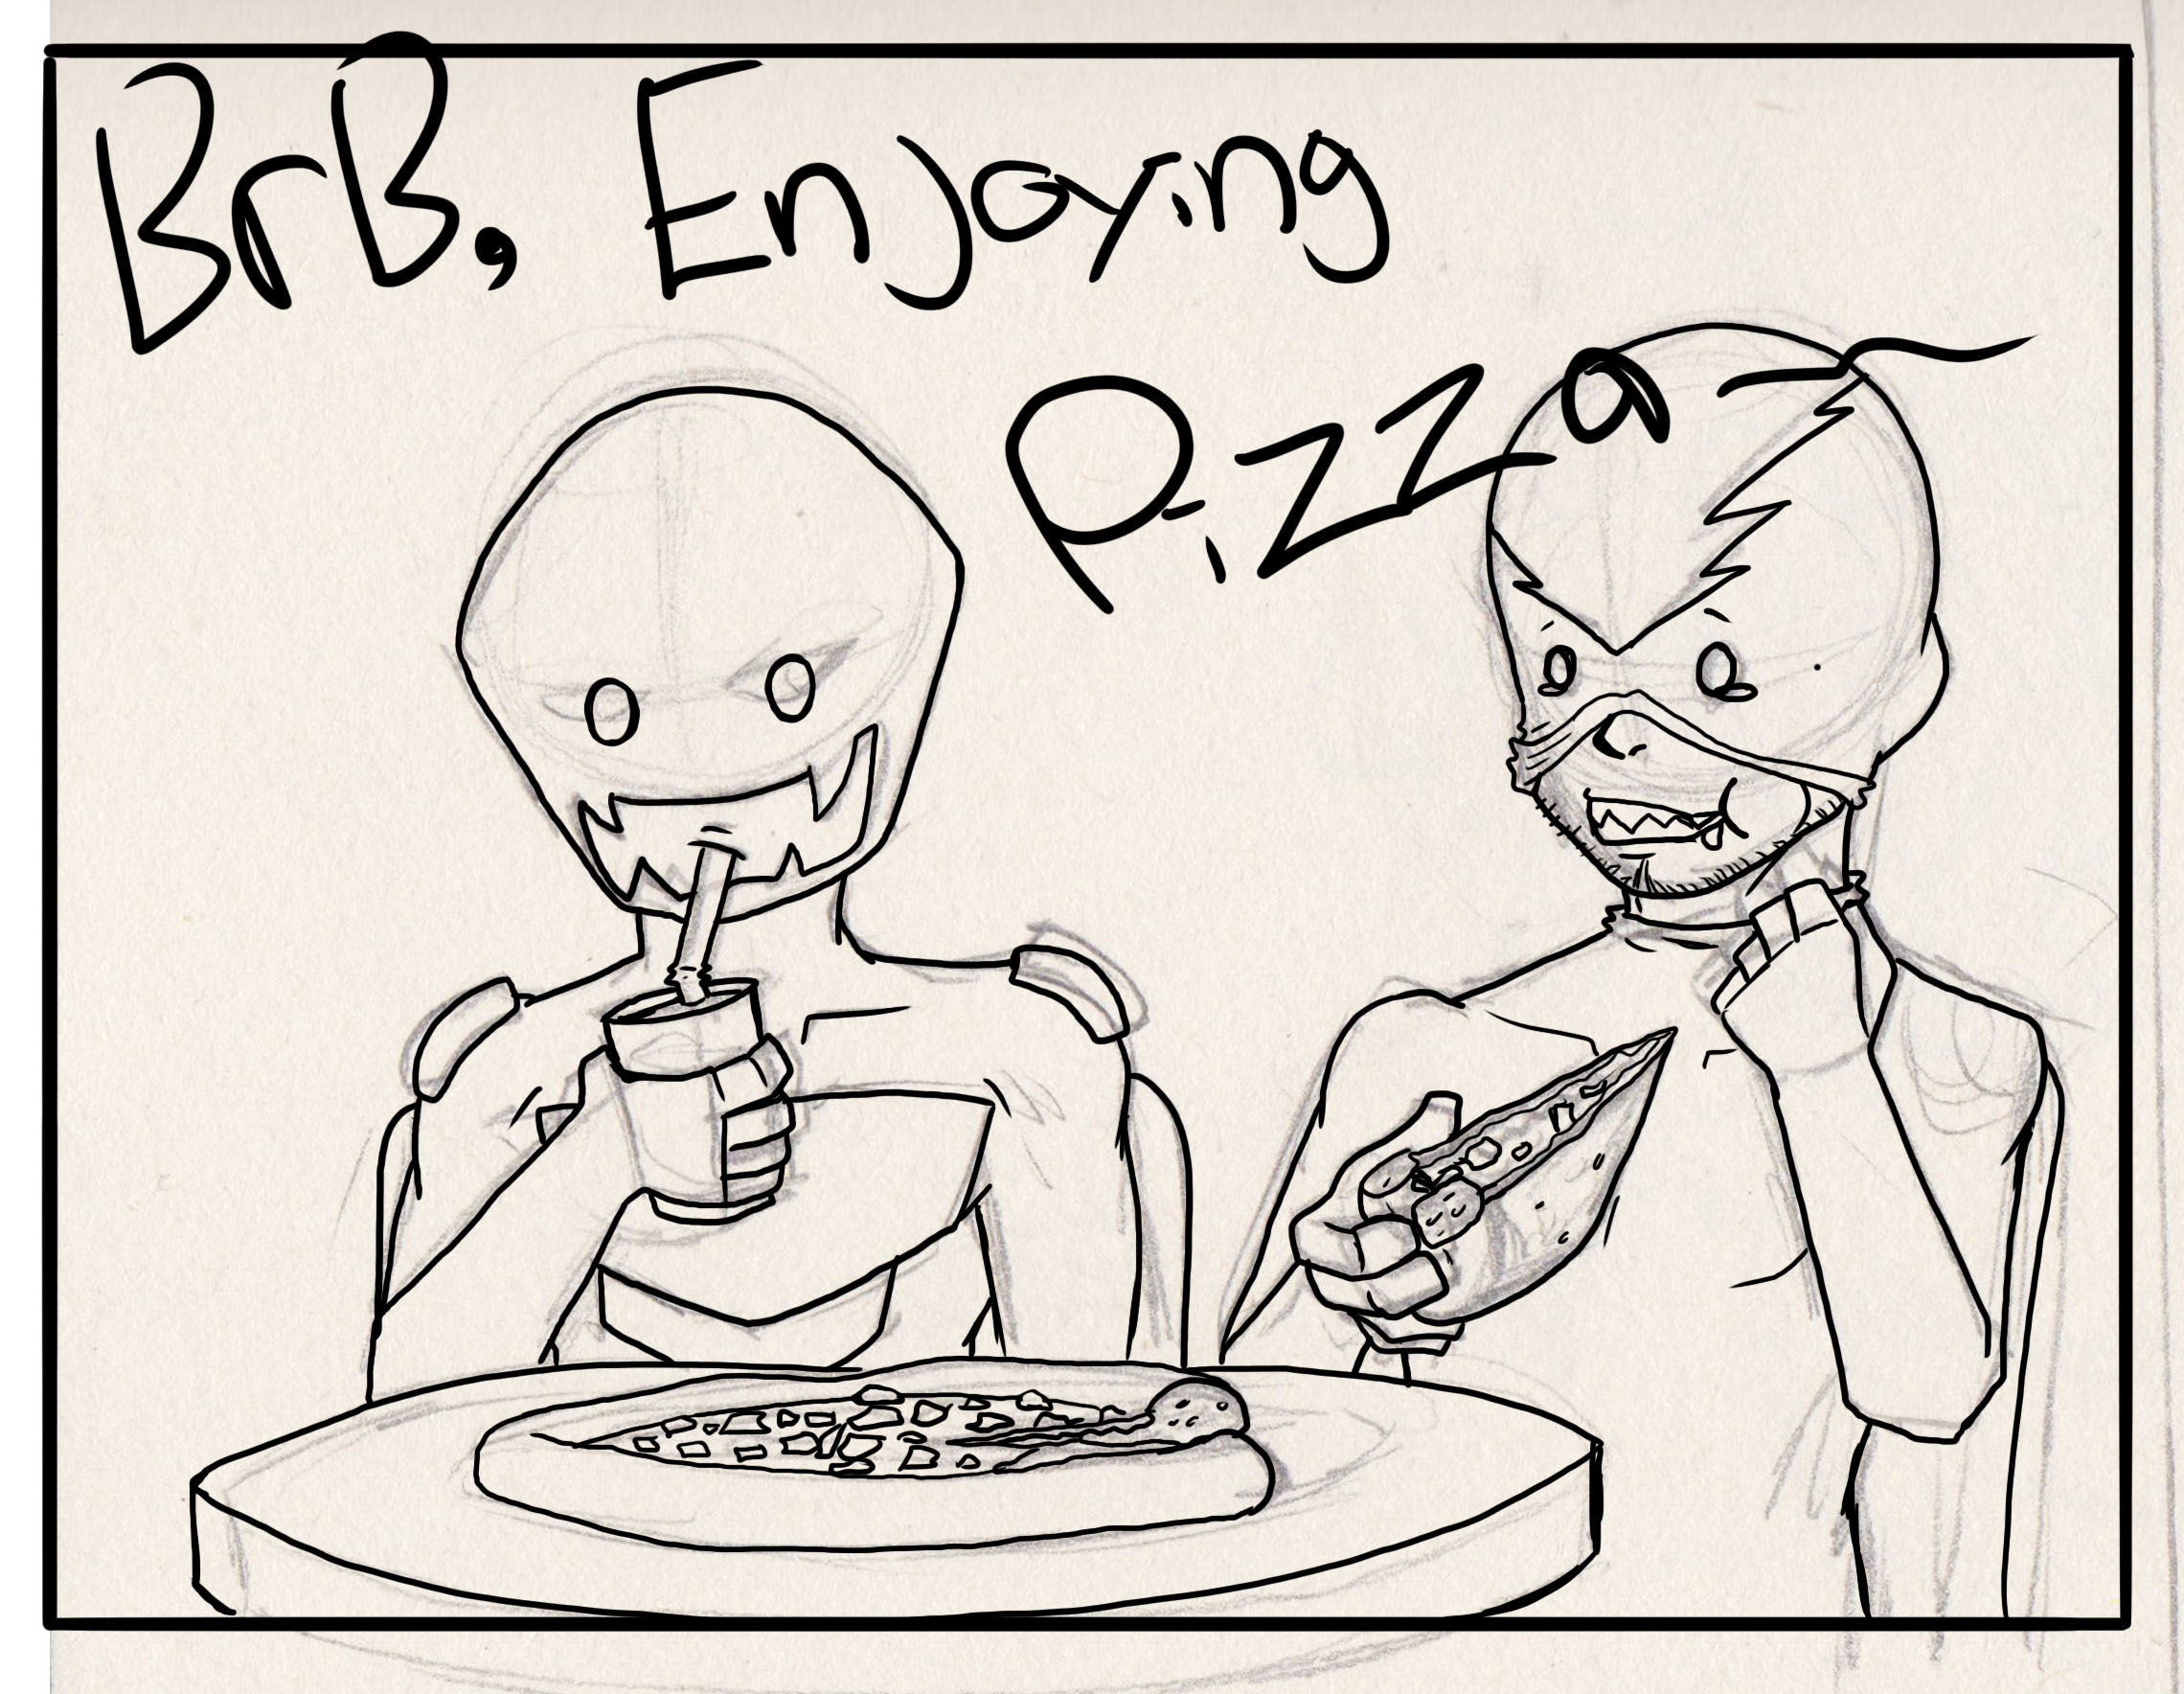 That Pizza looks delicious